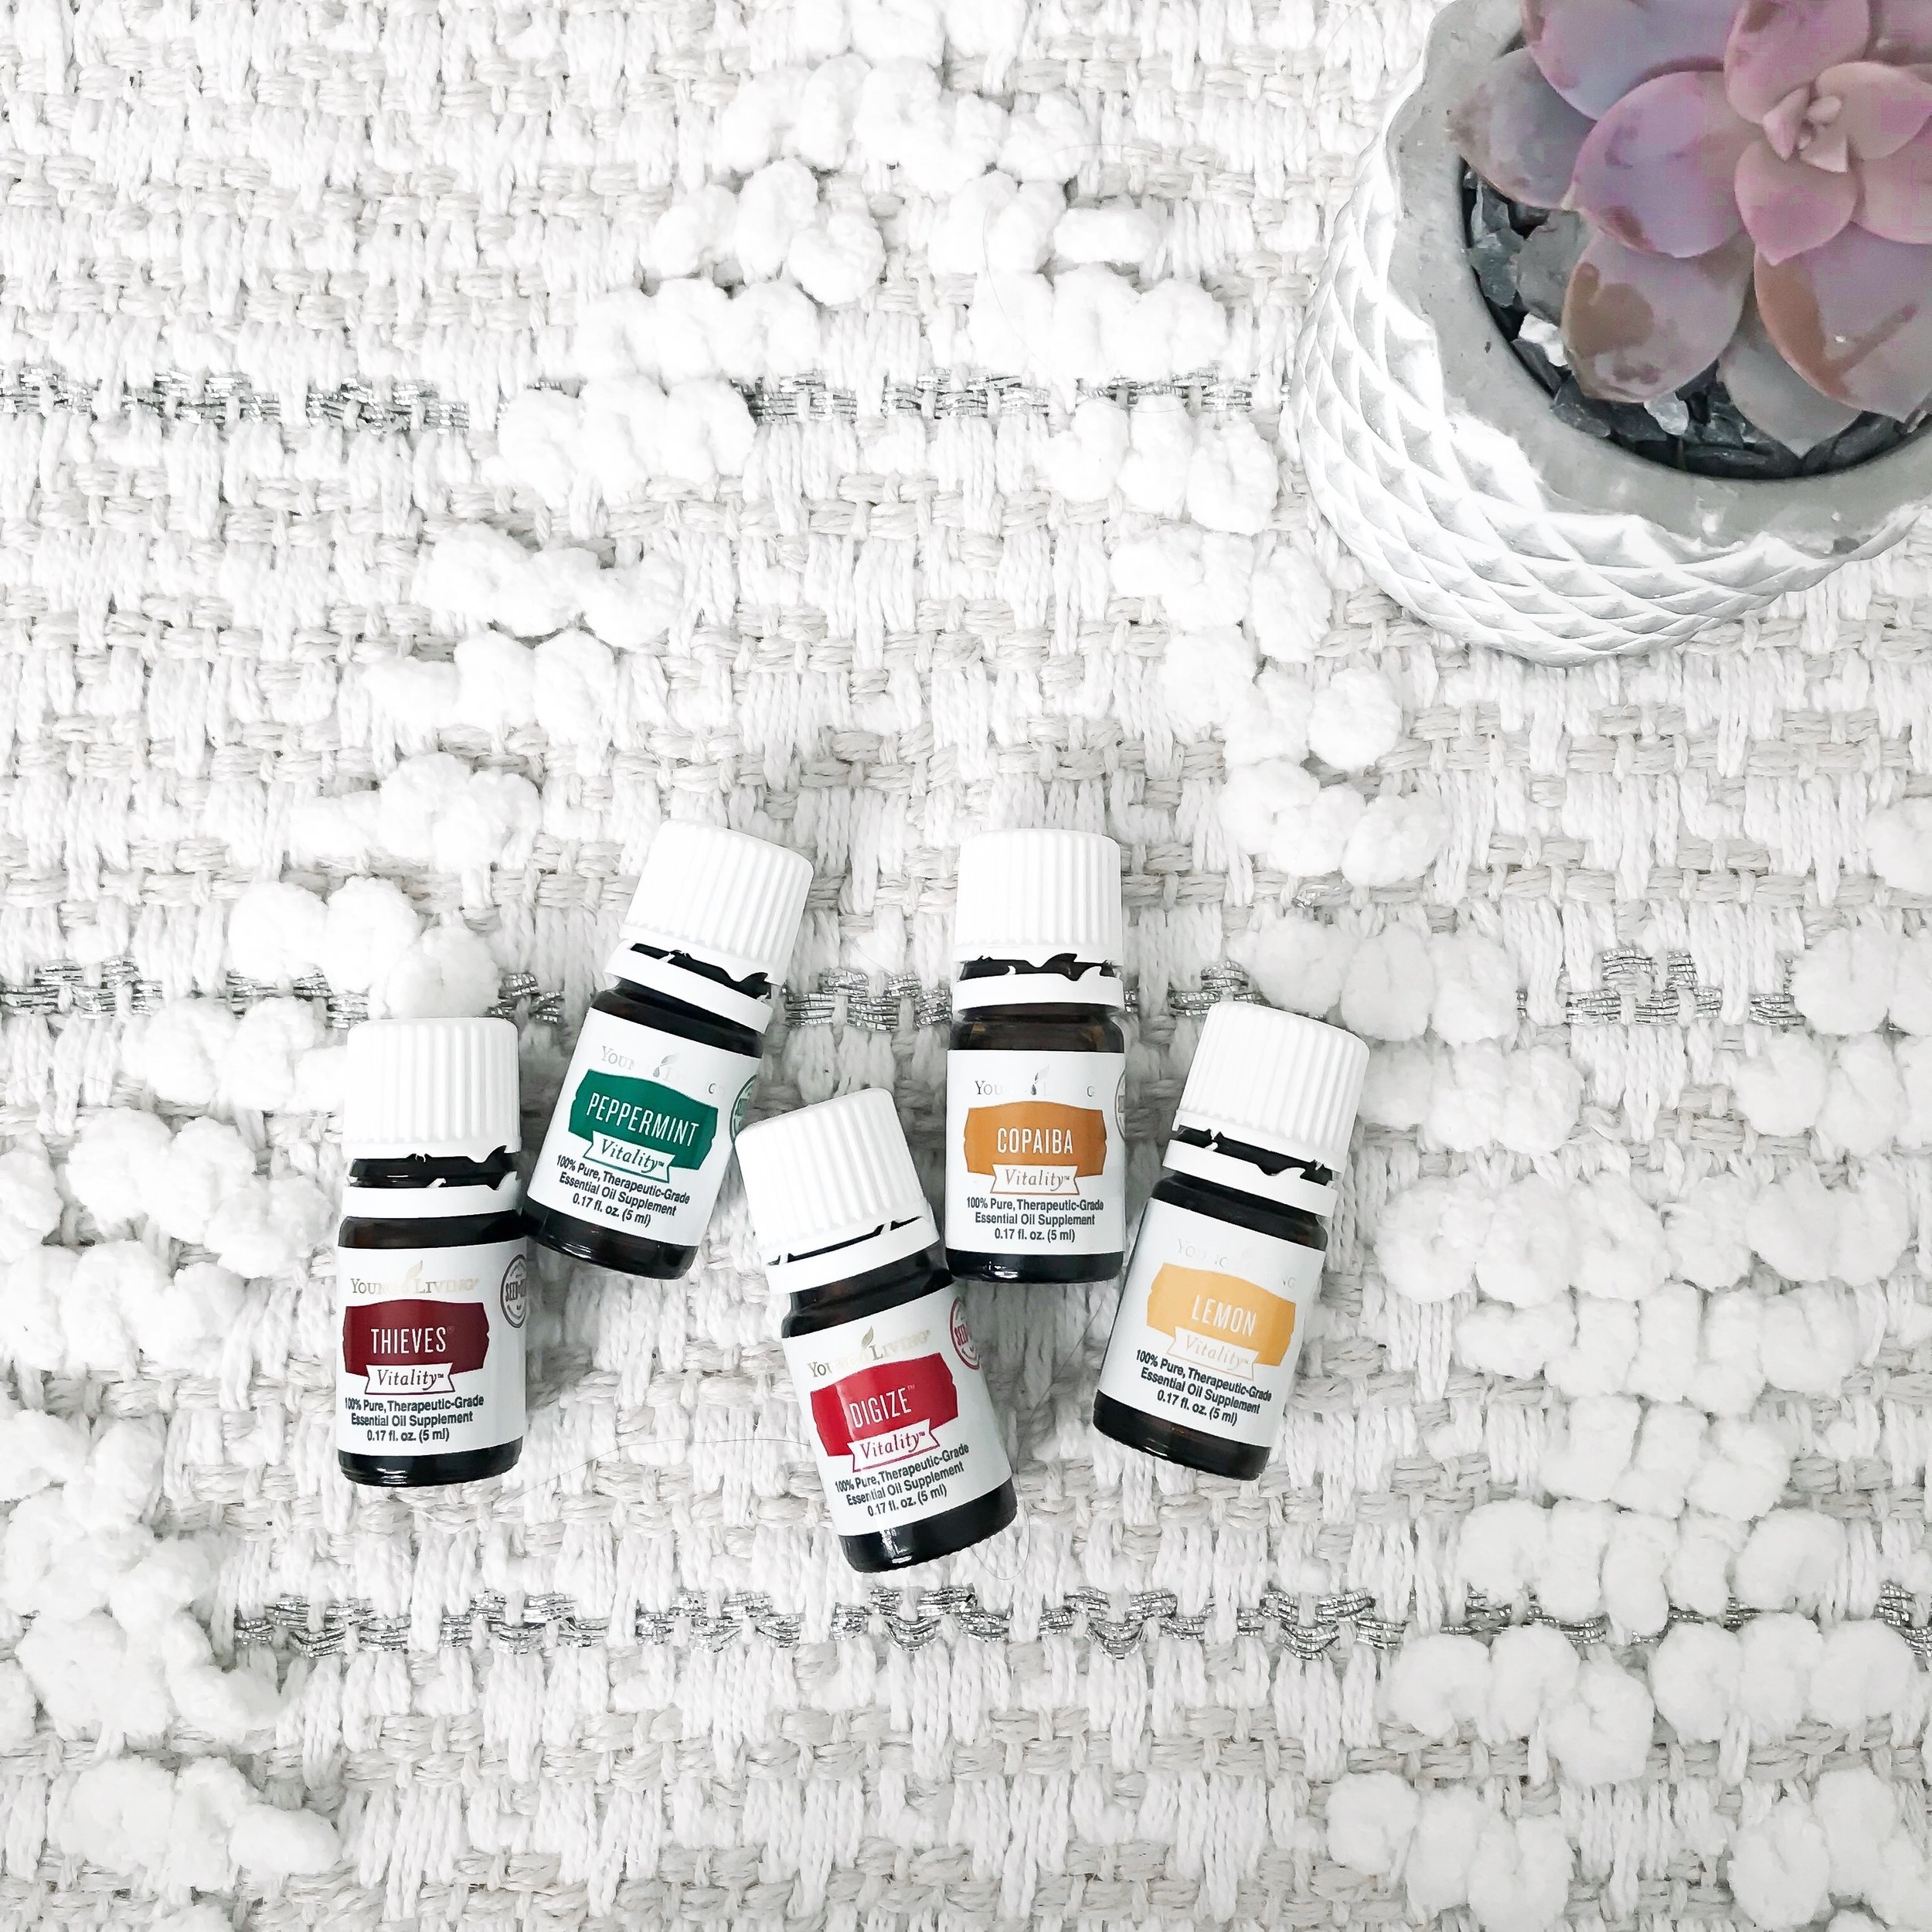 Essential Oils 101: What You Need to Know About Young Living | Pine Barren Beauty | how to use essential oils, how to get started with young living